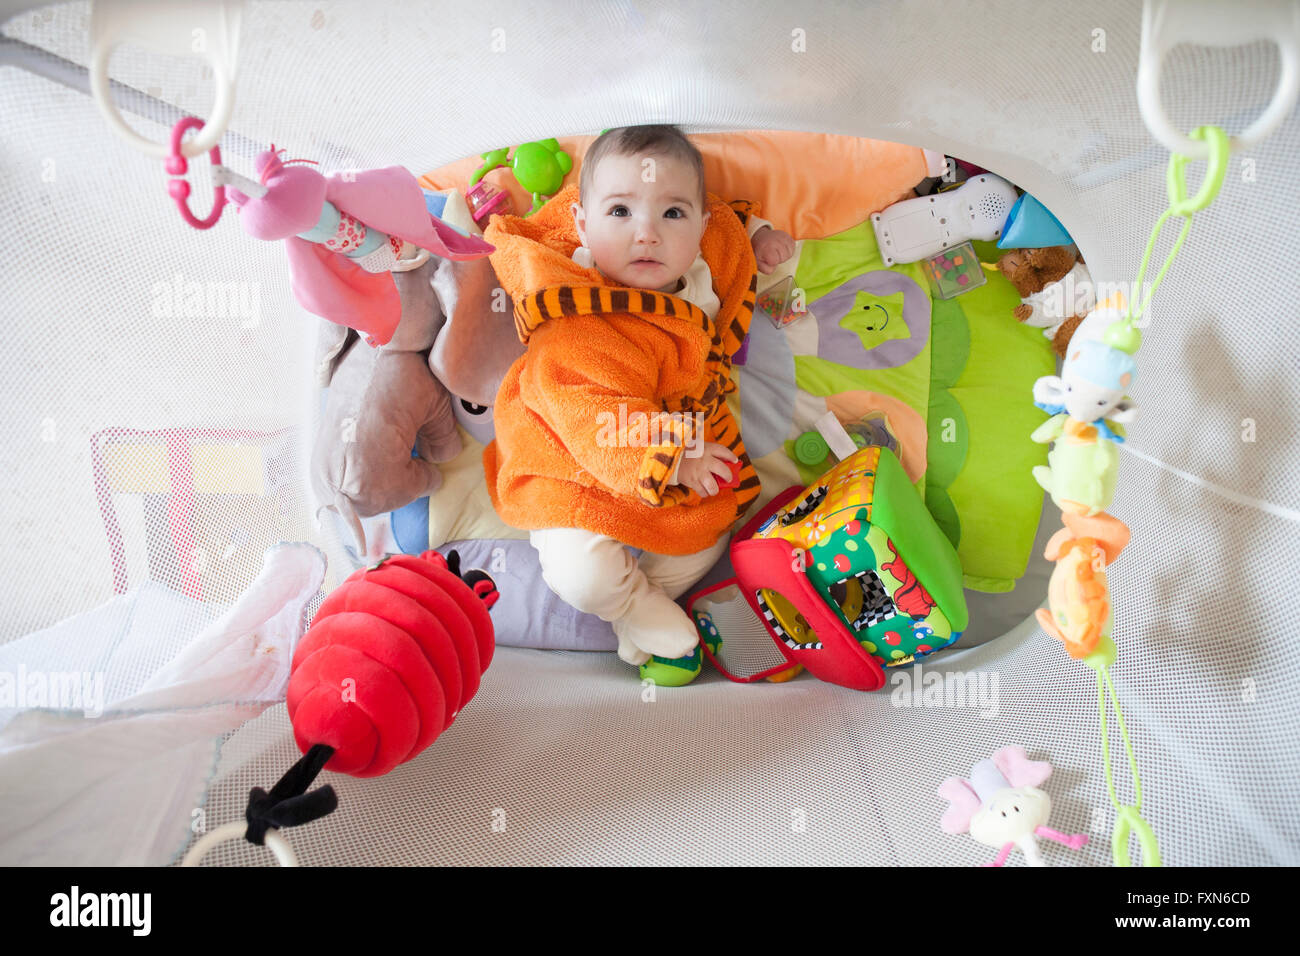 8 Month Old Toys Yarn : Cute baby girl at playpen full of soft toys months old